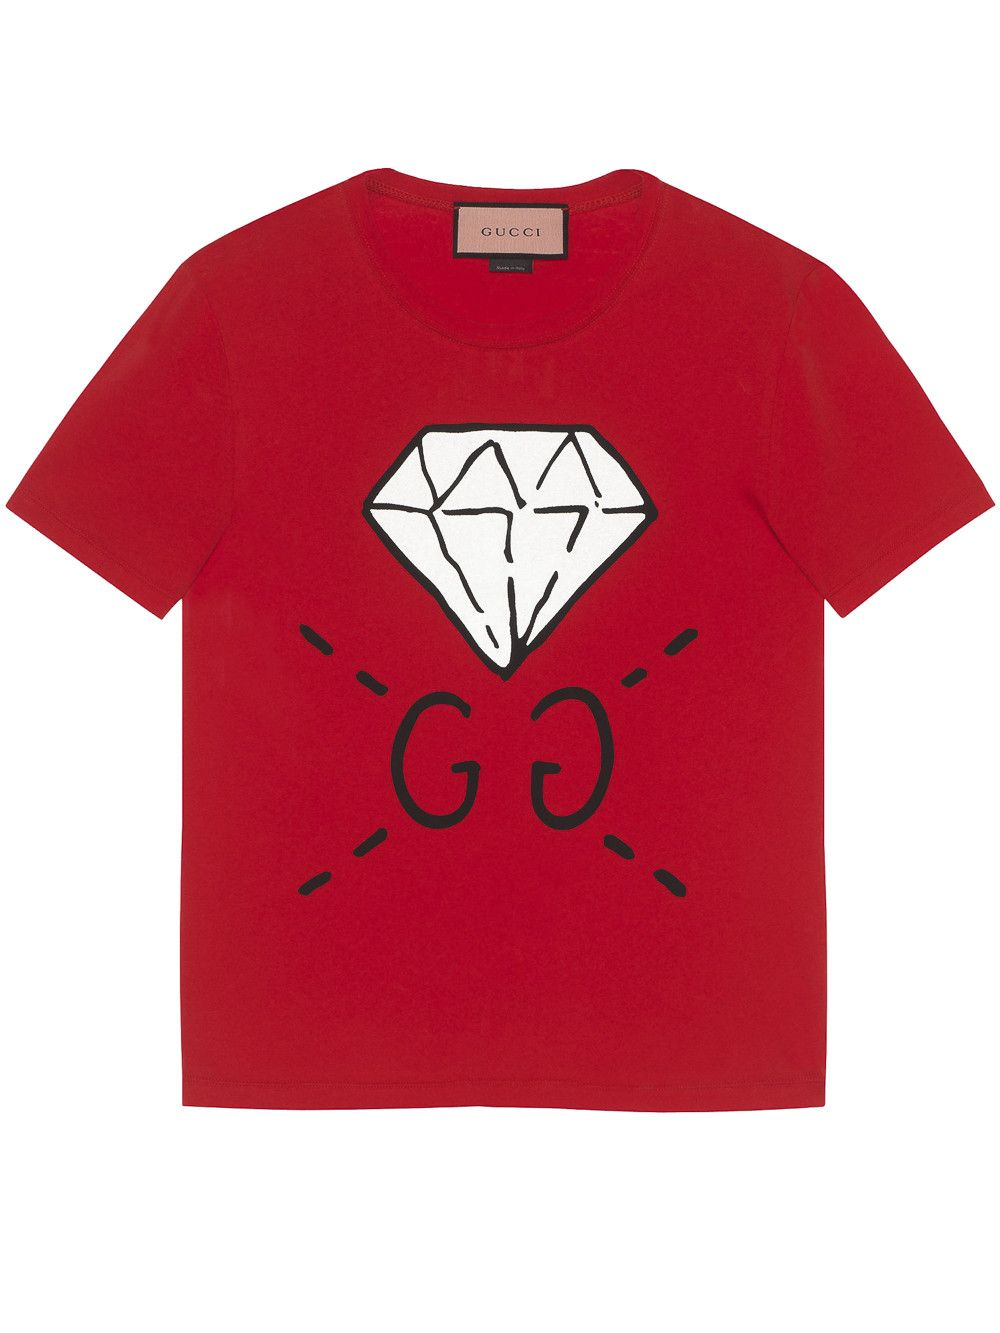 98d5cce5 GucciGhost GG Diamond t-shirt Gucci Tee, Gucci Sweatshirt, Gucci Shirts,  Gucci